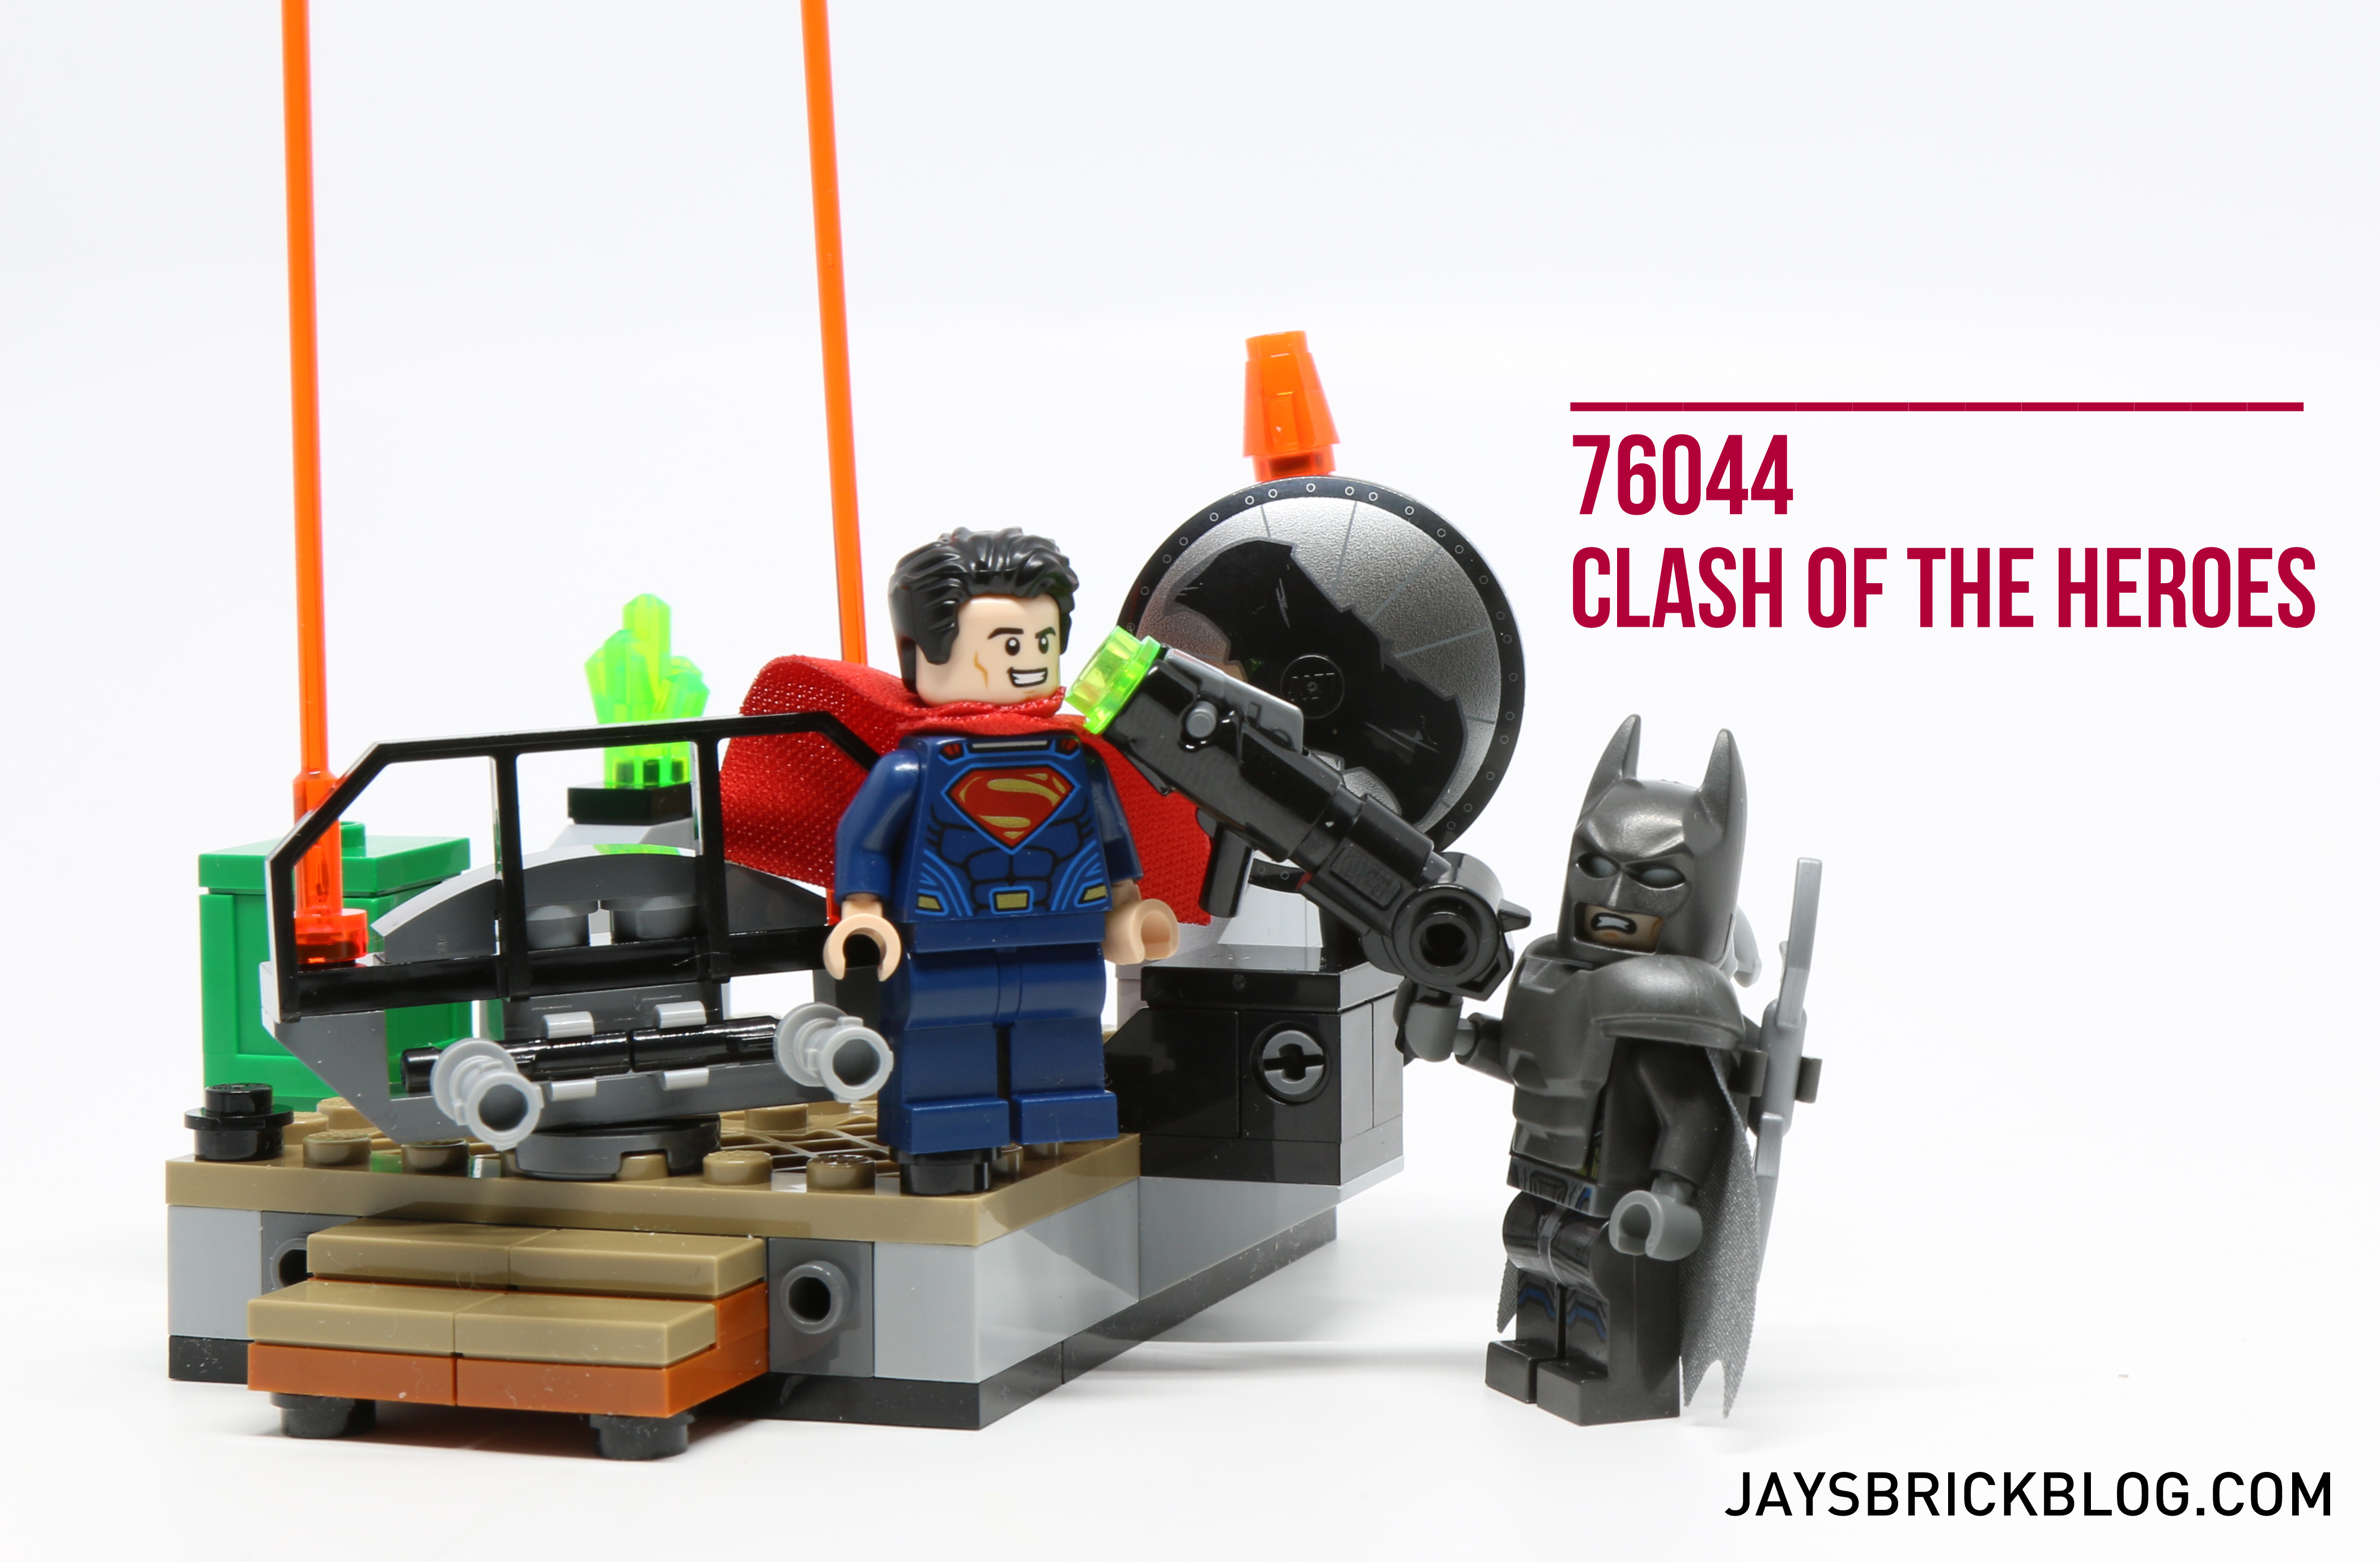 Review: LEGO 76044 Clash of the Heroes